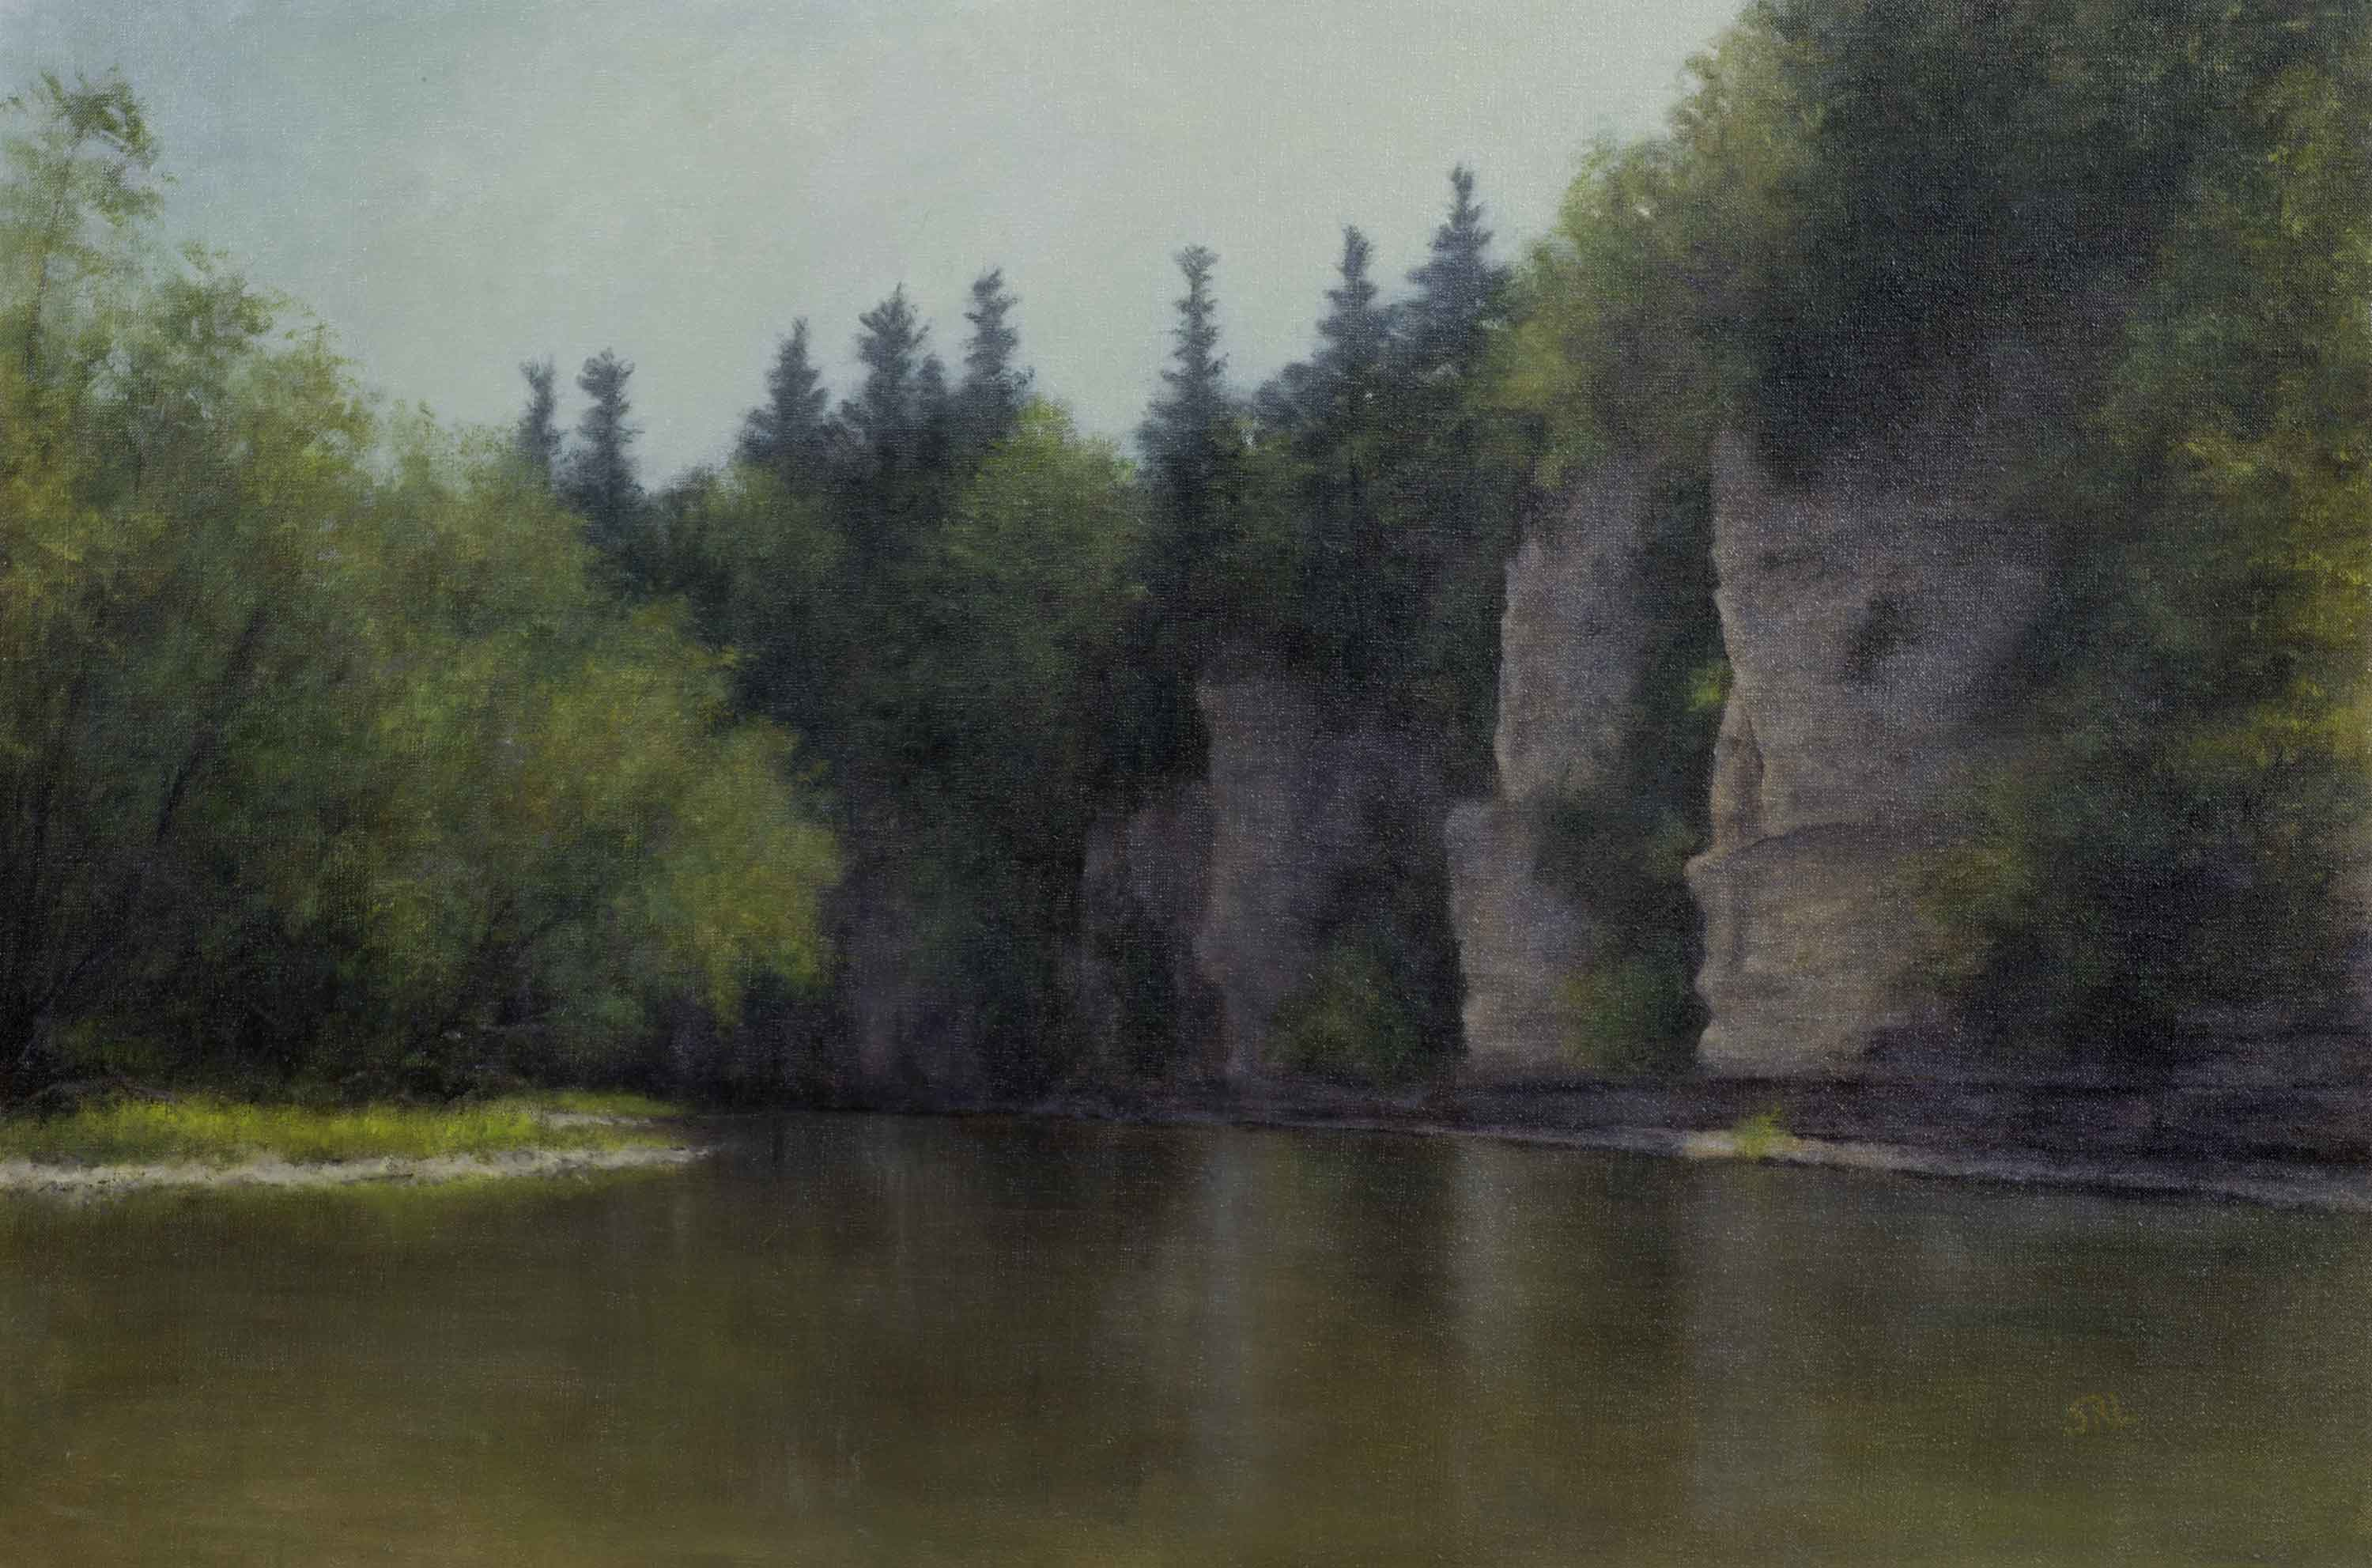 Sara Lubinski, Stone Passage, 2015, oil on linen, 20x30 in., collection of the artist